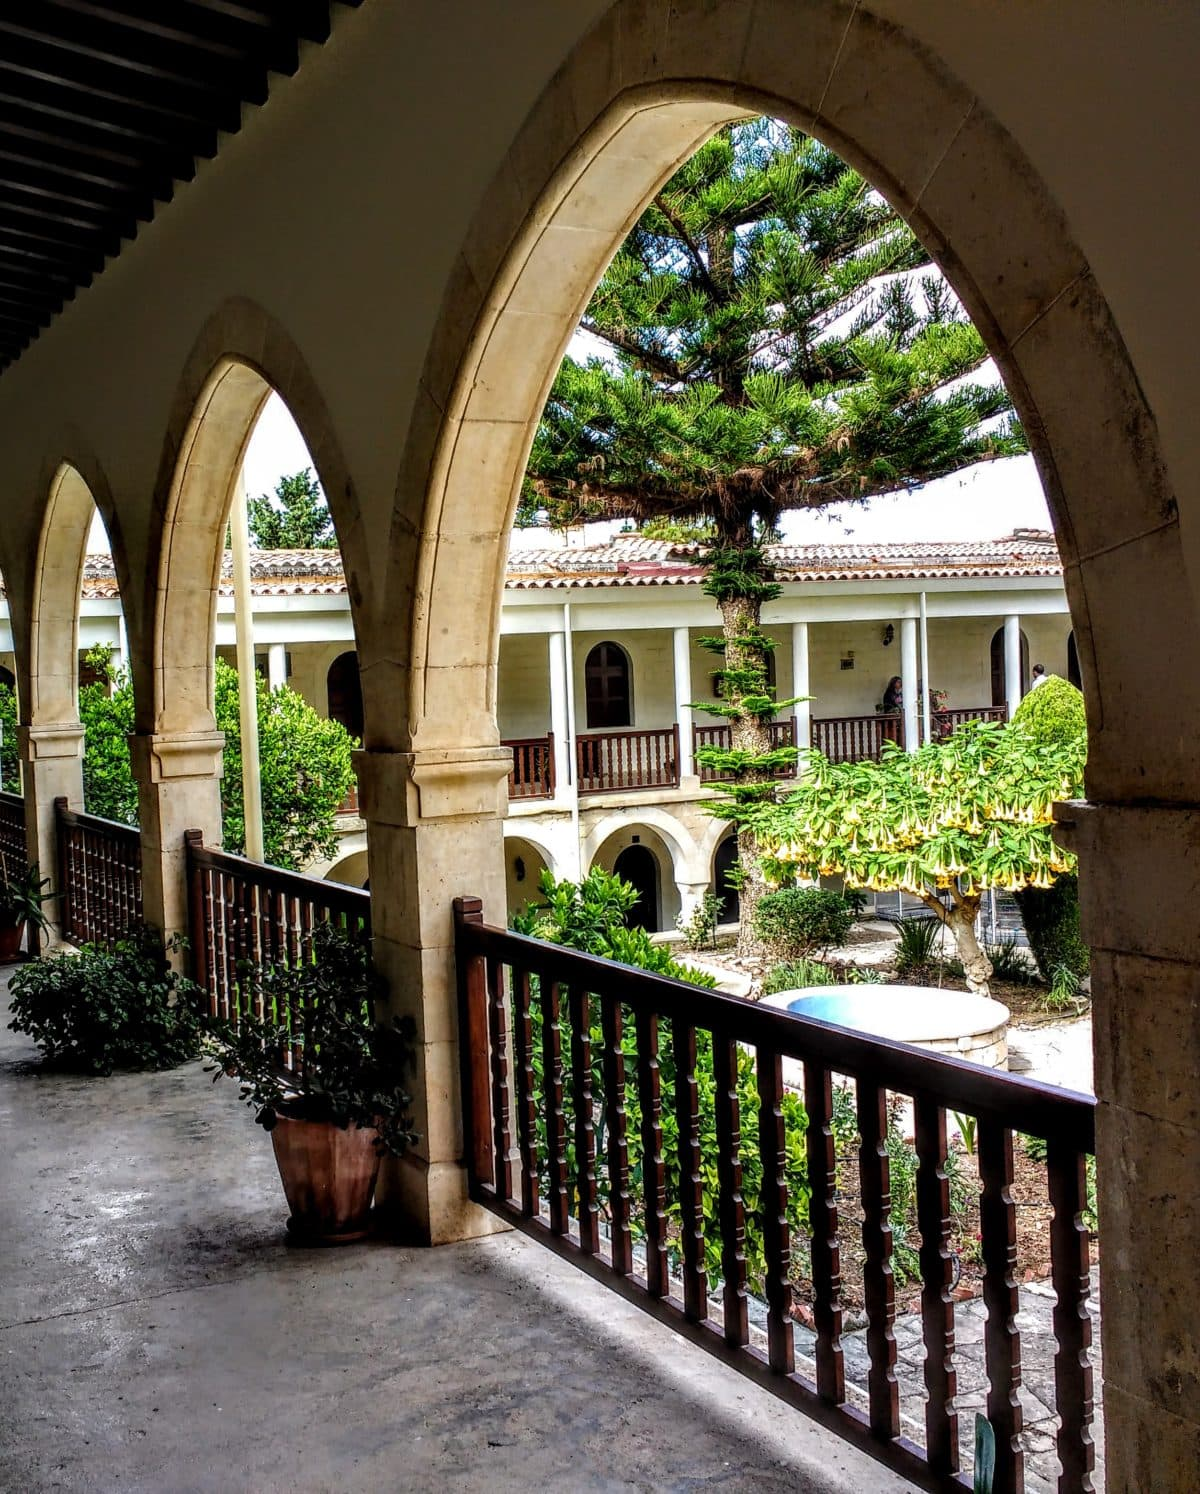 view of monastery courtyard sacred spaces Cyprus Agios Neophytos Monastery Cyprus